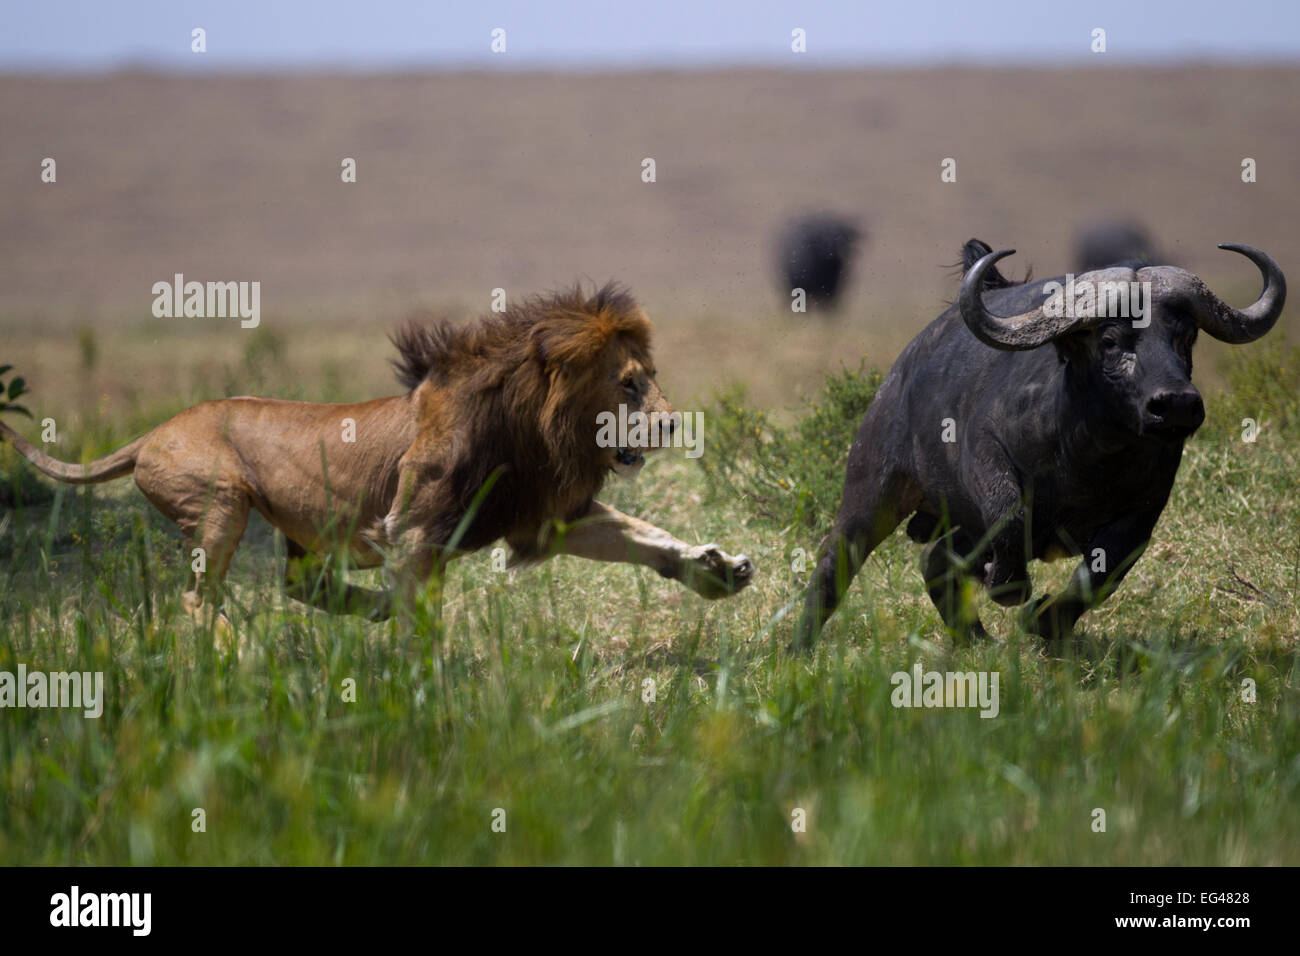 Male lion (Panthera leo) in confrontation Cape buffalo (Syncerus caffer). Masai Mara National Reserve Kenya July - Stock Image